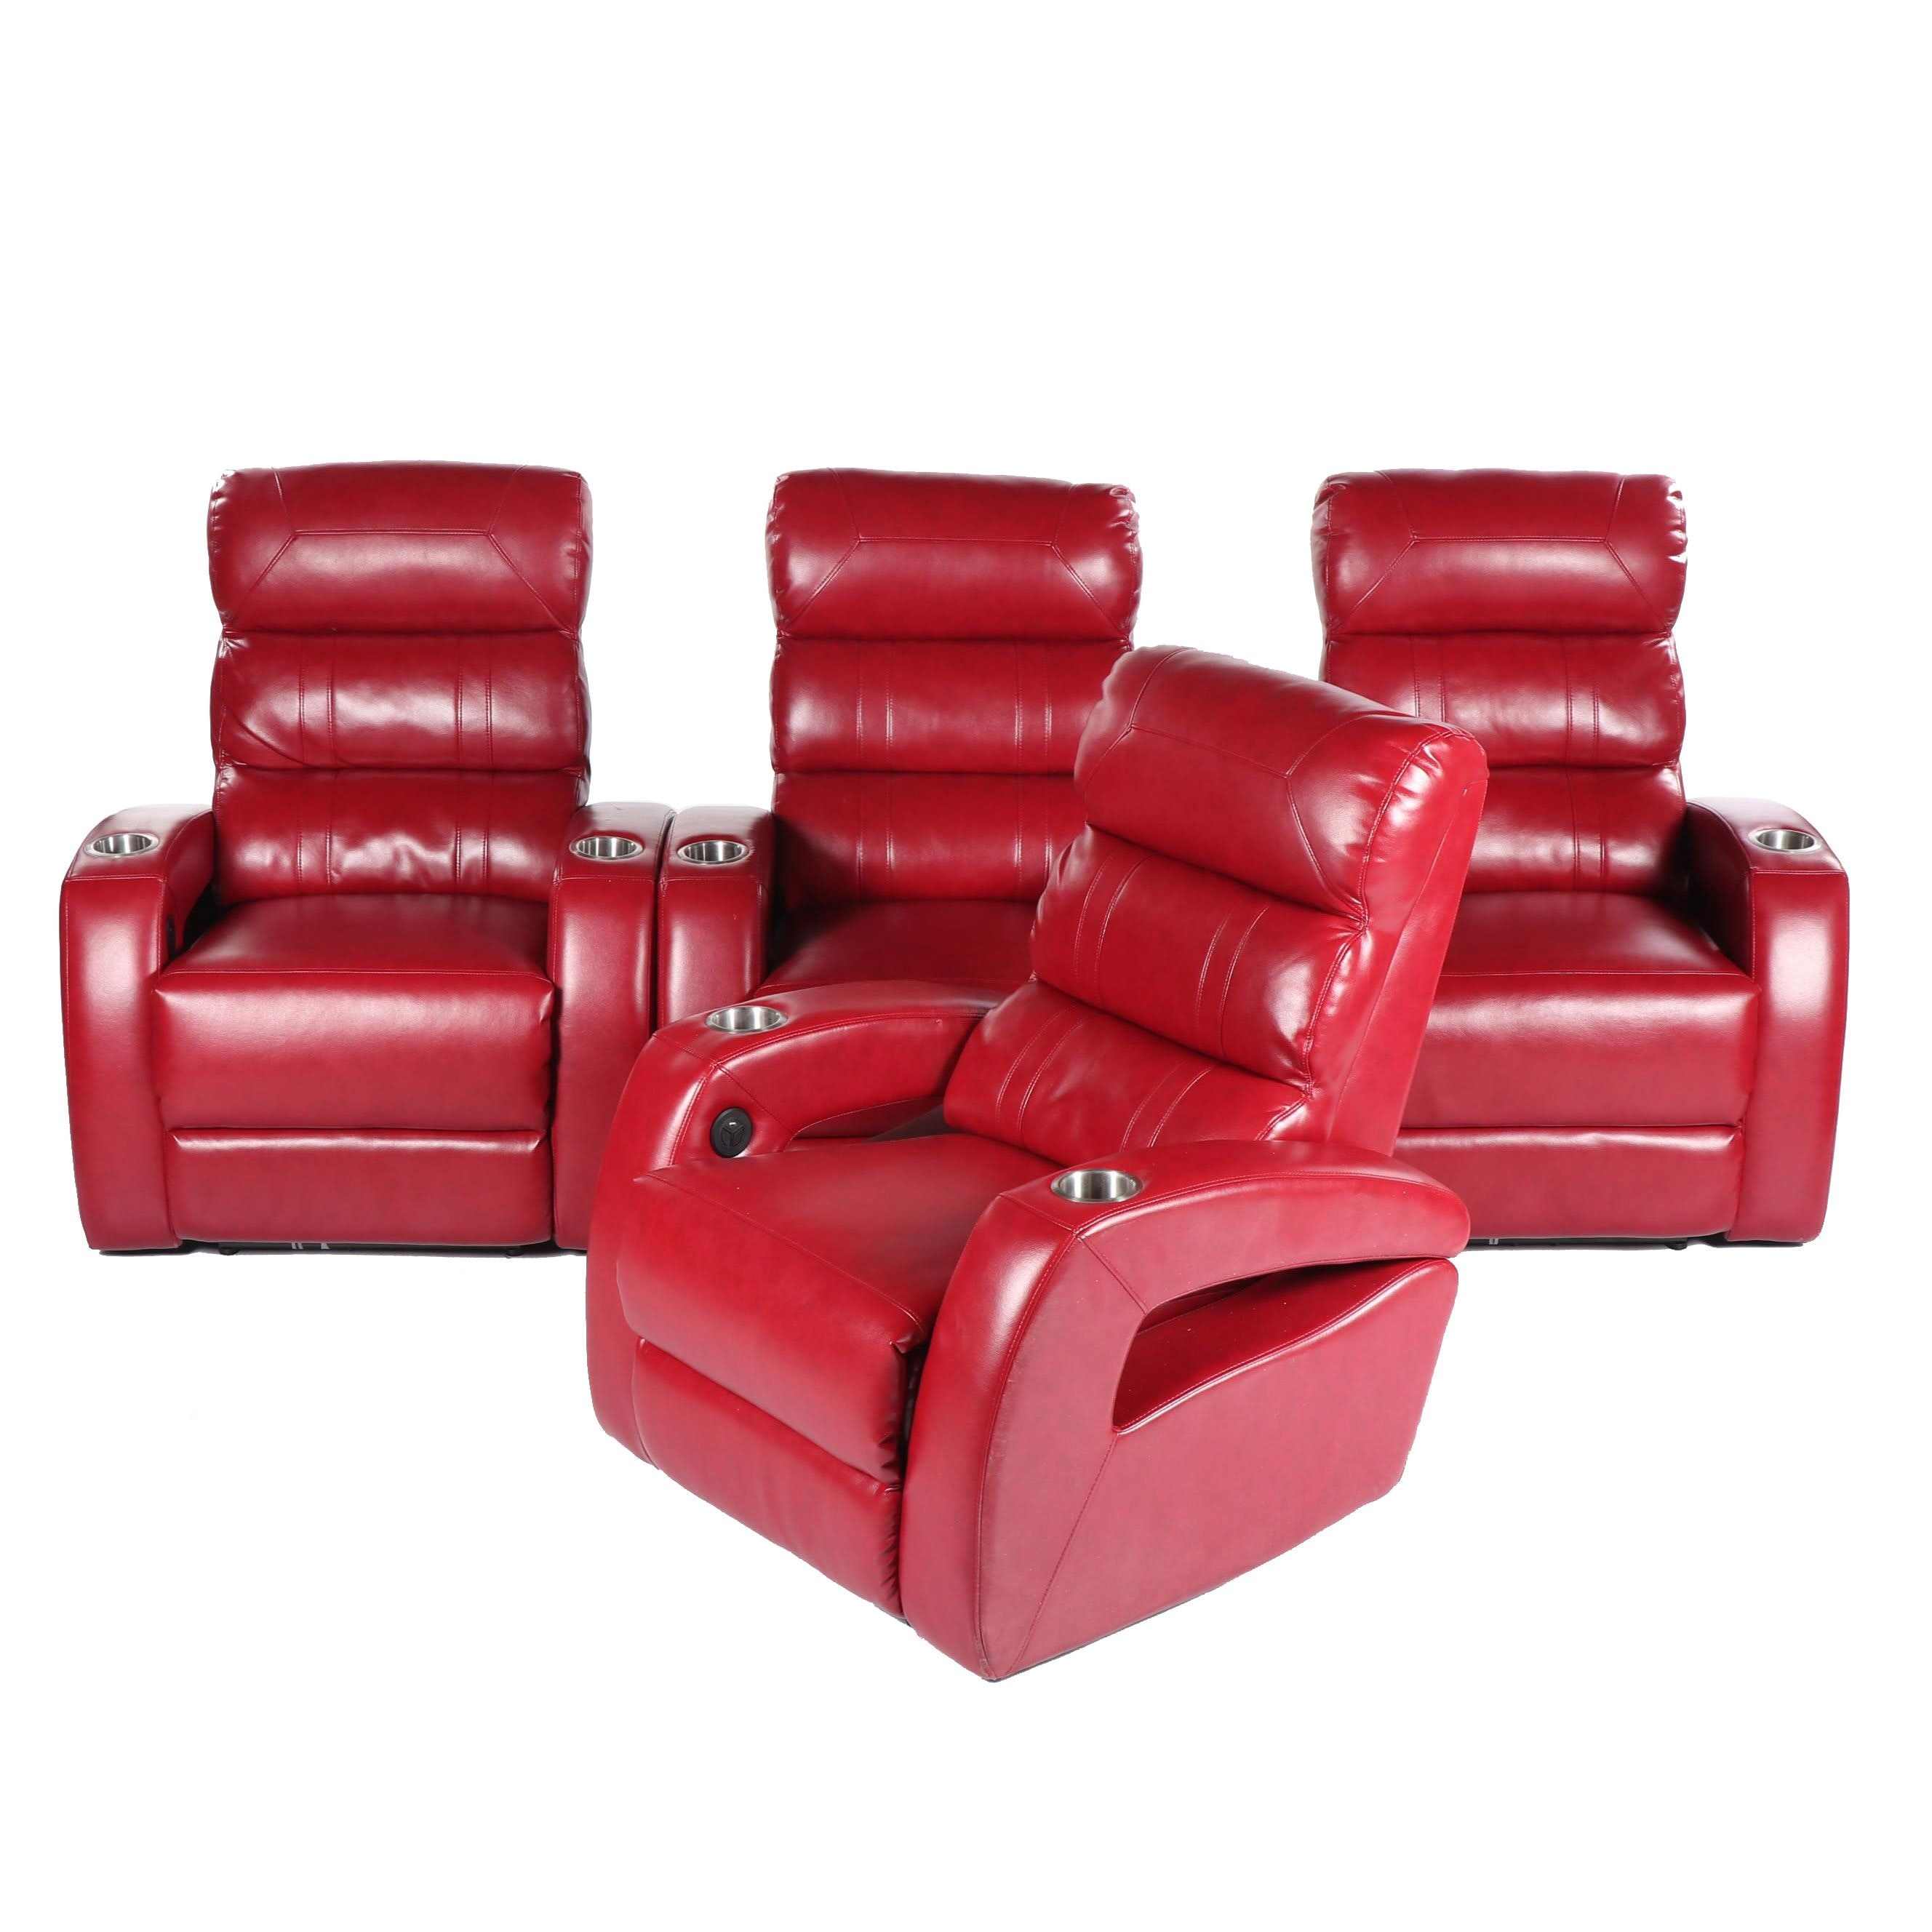 Leather Upholstered Home Theater Seats, 21st Century